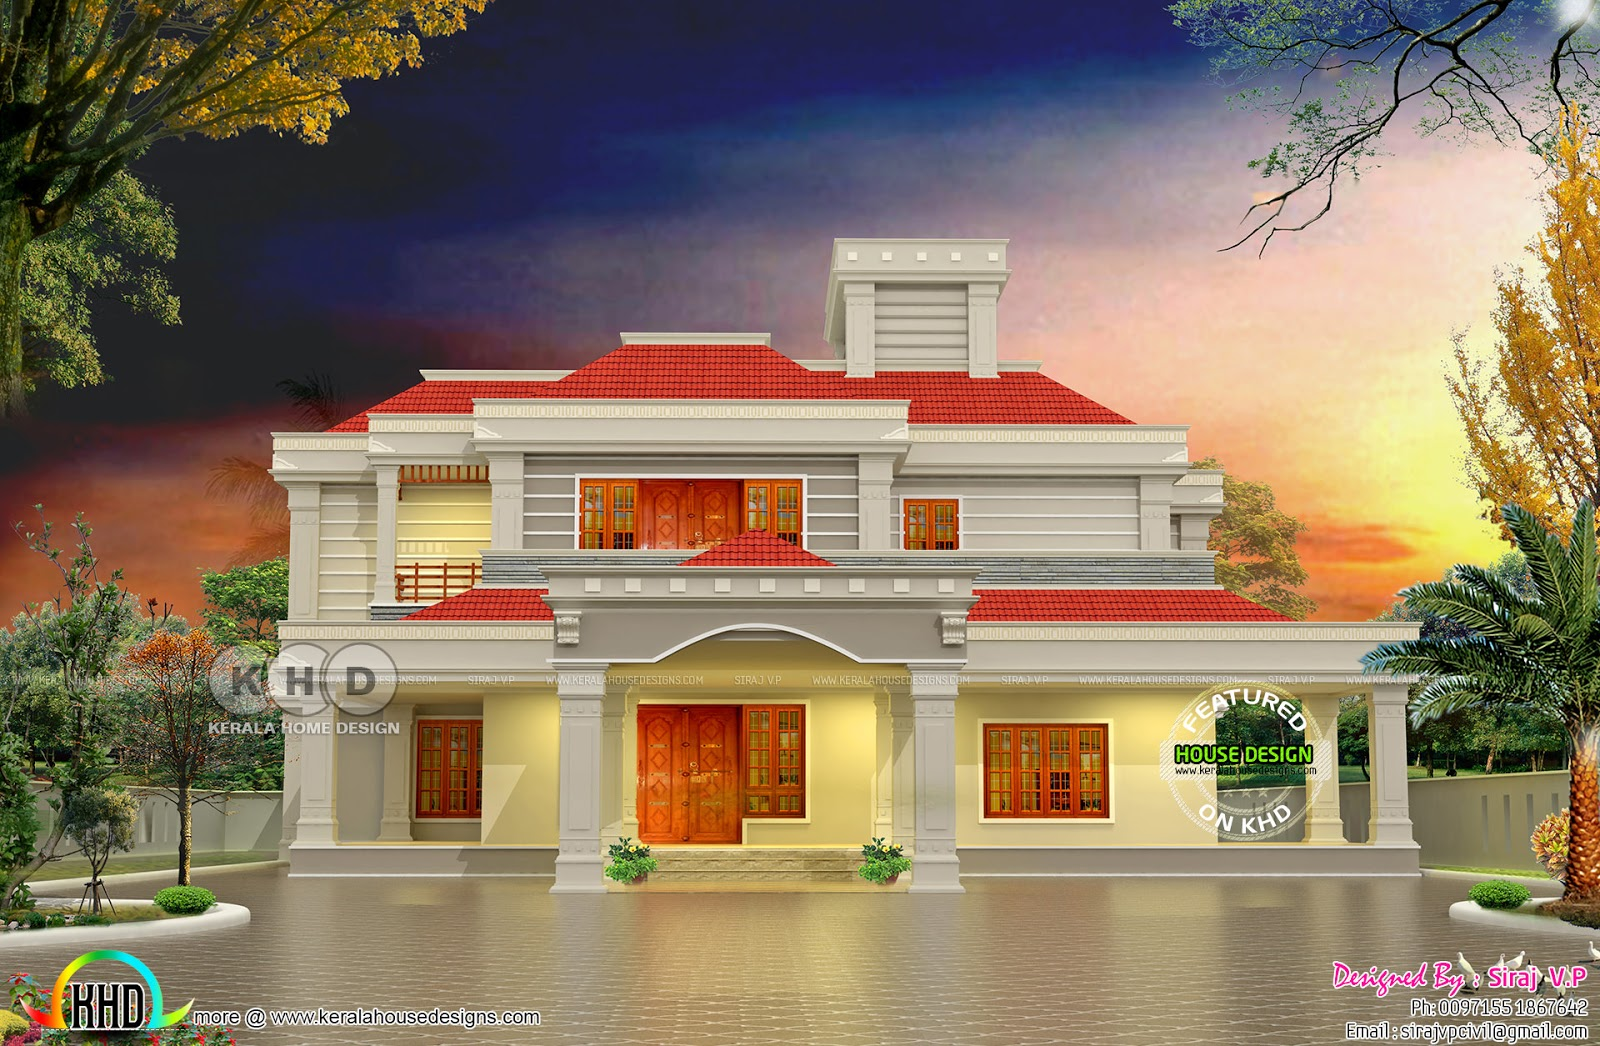 5 bedroom sloped roof house plan 325 sq M | Kerala home